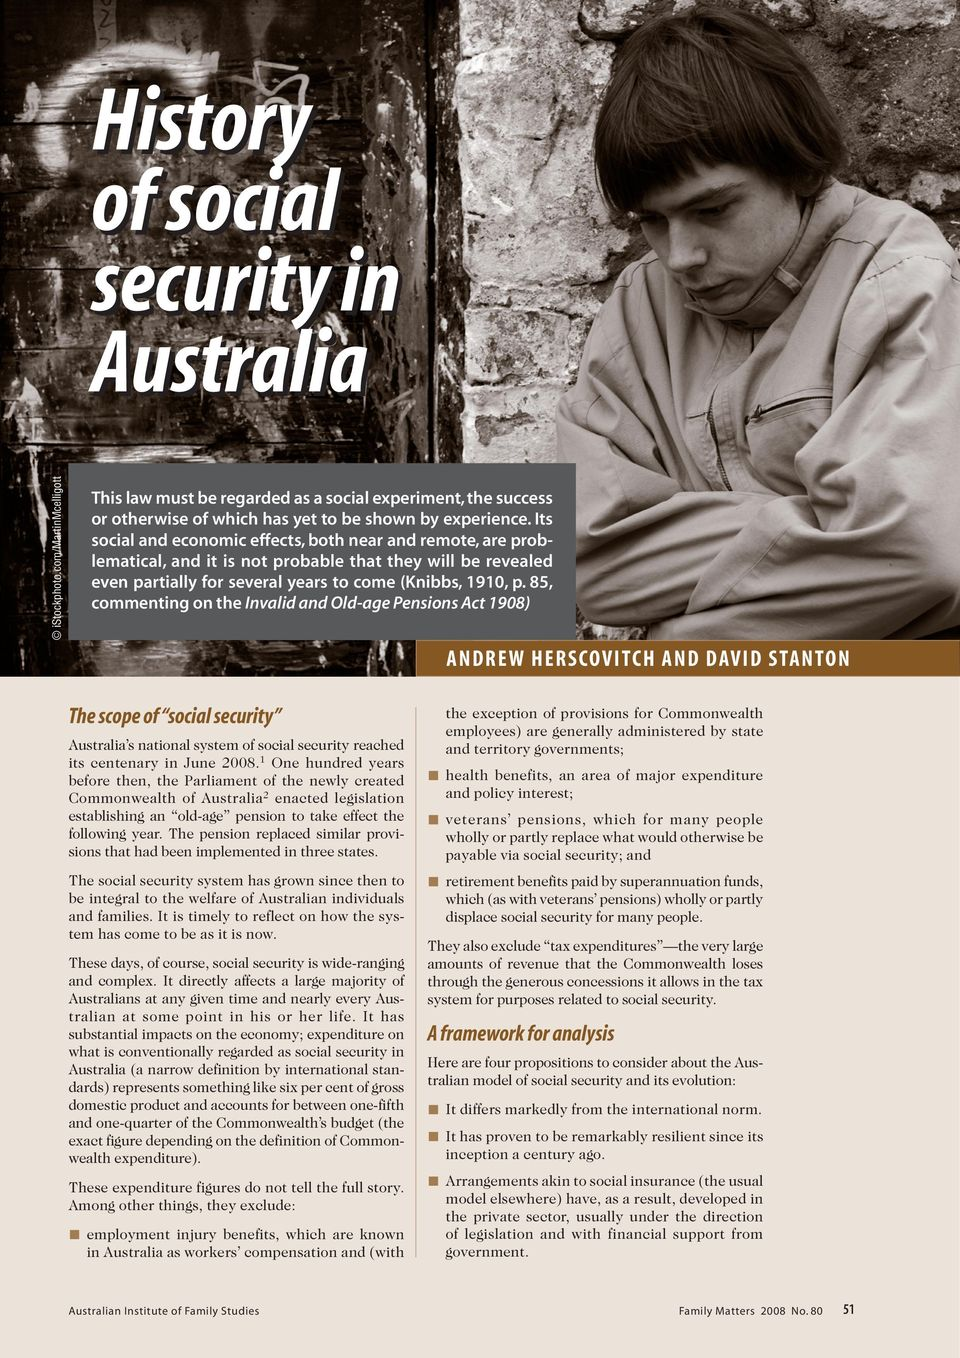 85, commenting on the Invalid and Old-age Pensions Act 1908) ANDREW HERSCOVITCH AND DAVID STANTON The scope of social security Australia s national system of social security reached its centenary in